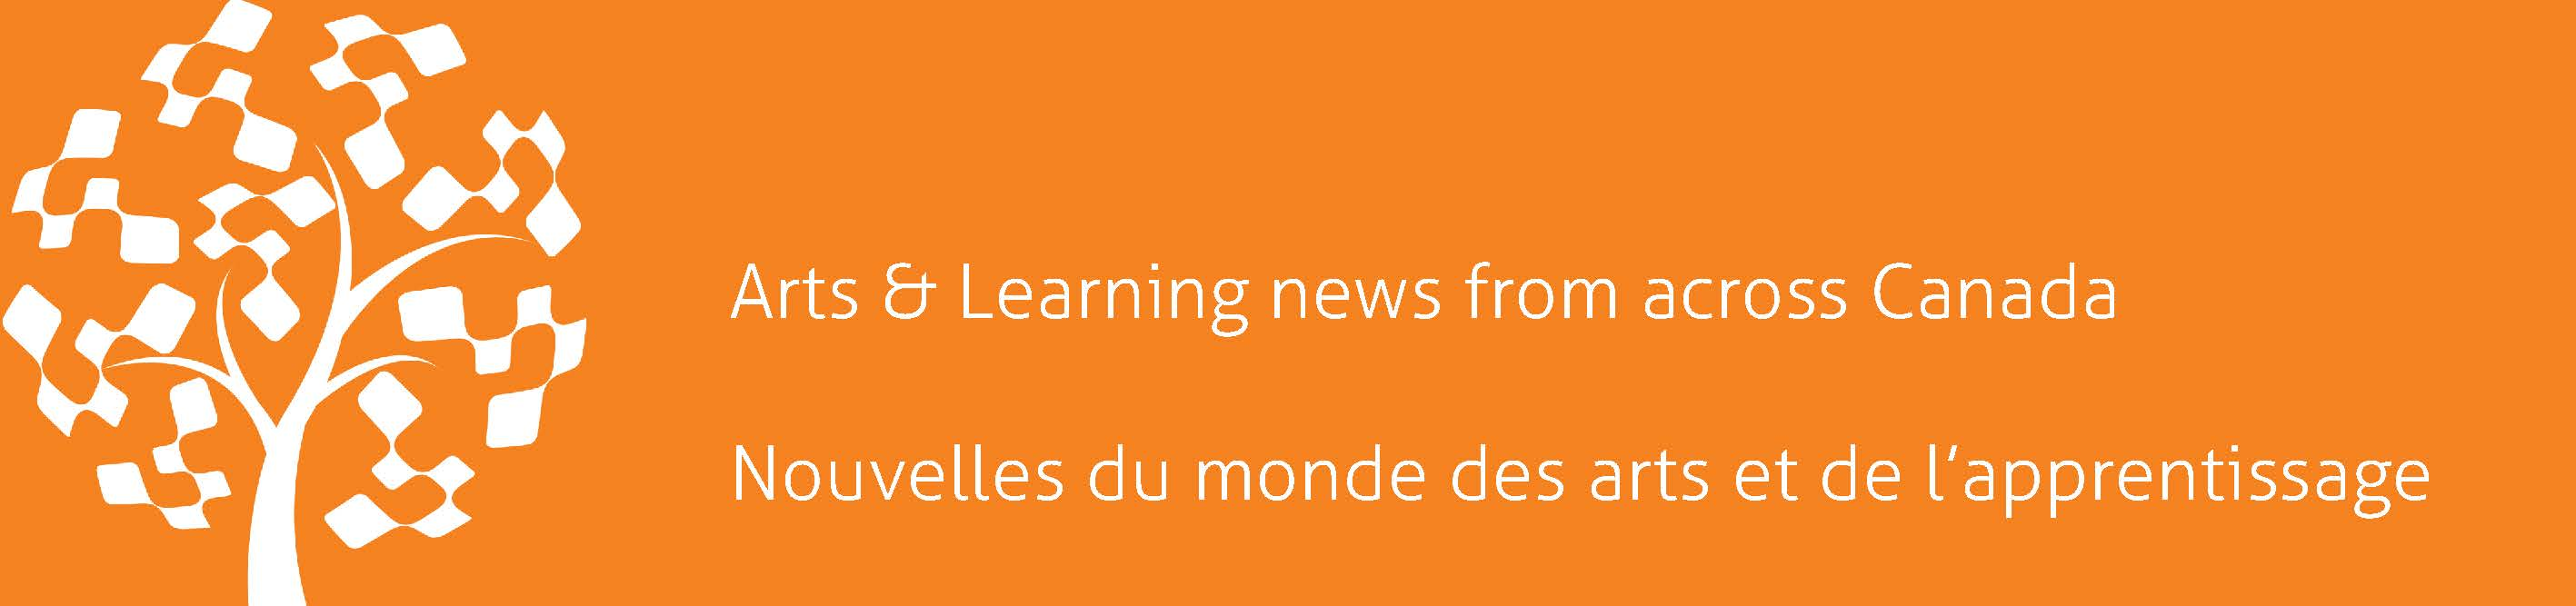 Arts & Learning news from across Canada / Nouvelles du monde des arts et de l'apprentissage